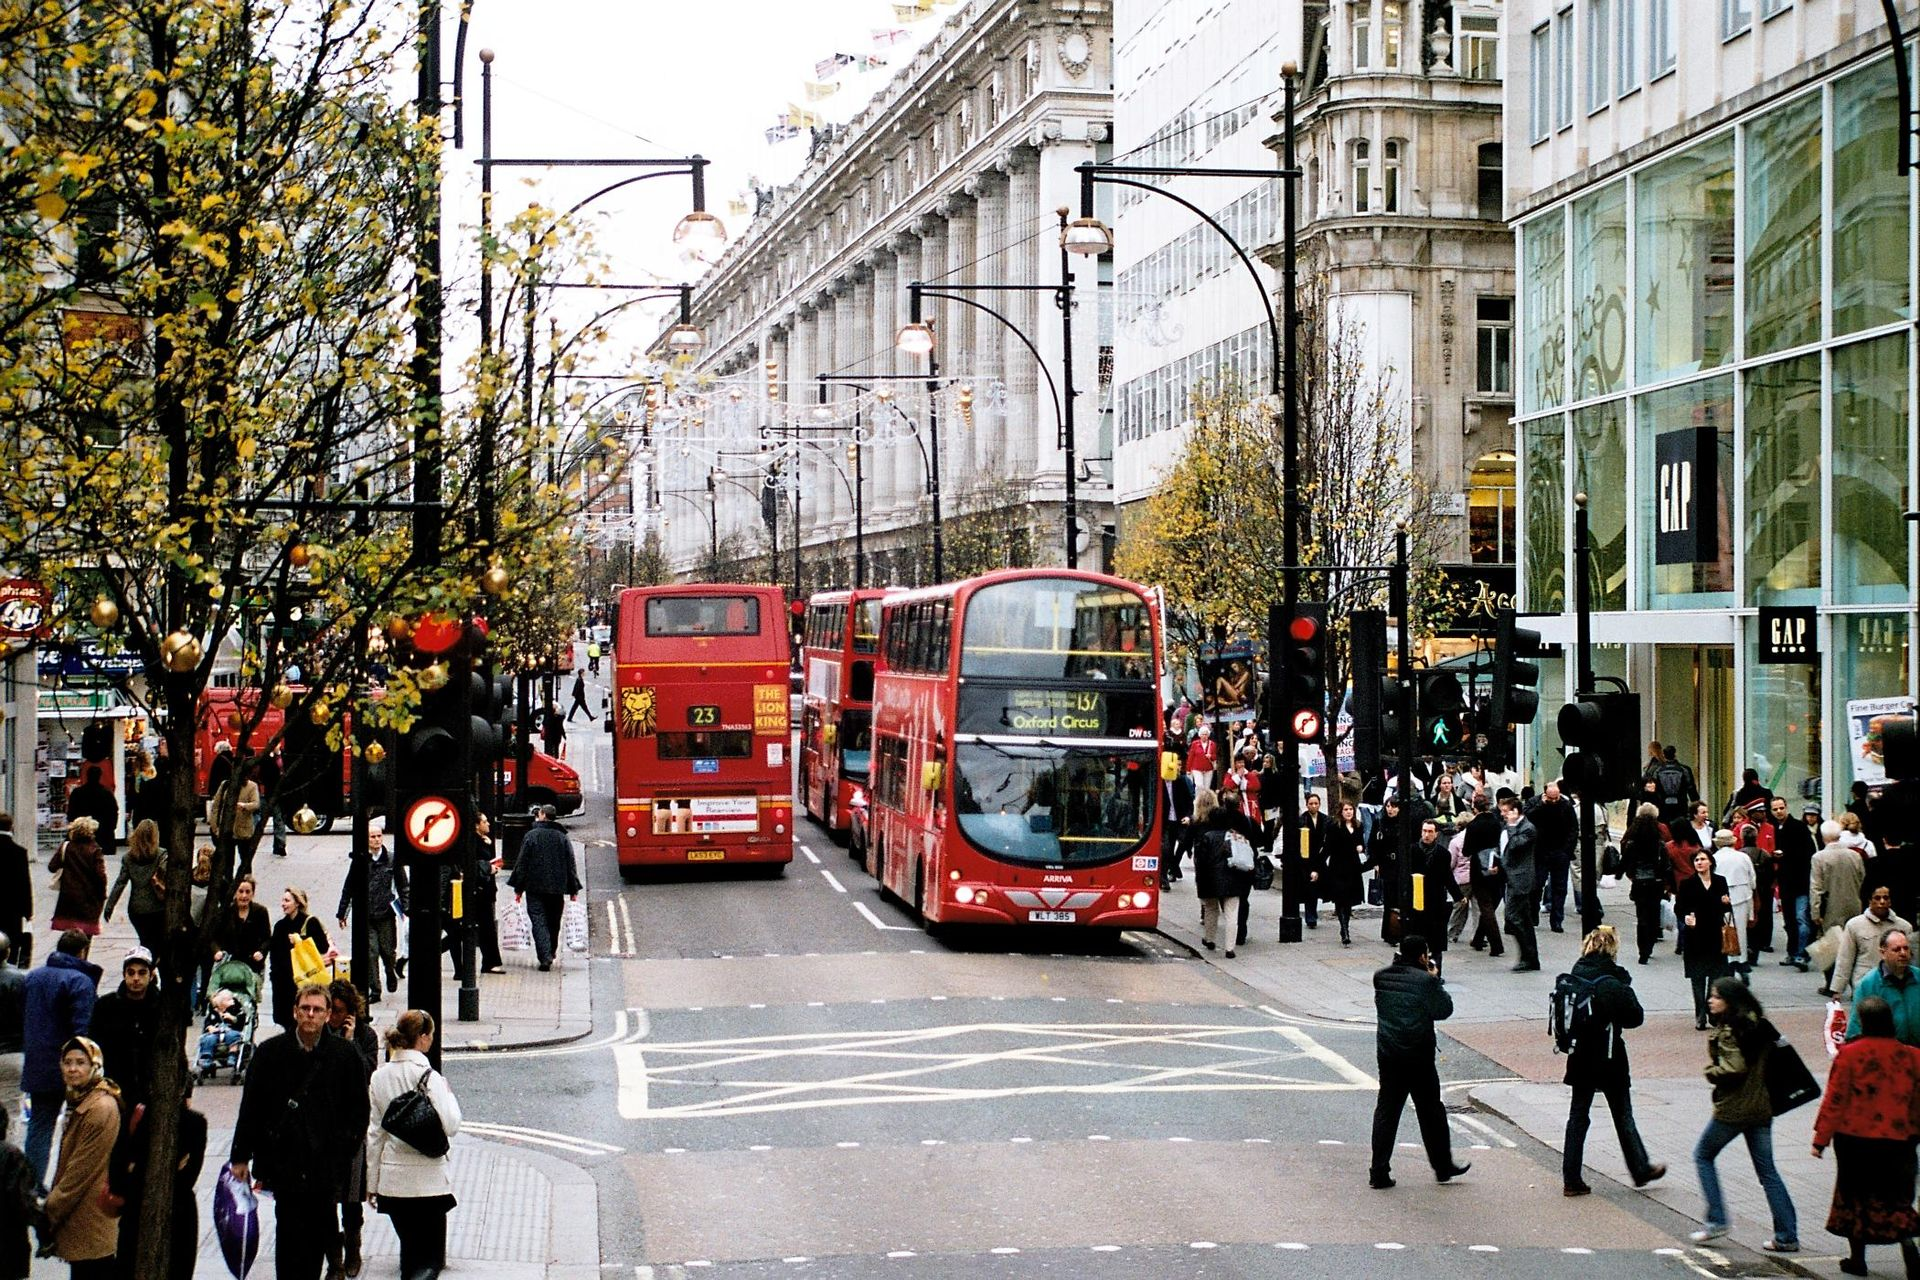 London's Shopping Street, Oxford Street, To Be Pedestrianized by 2020